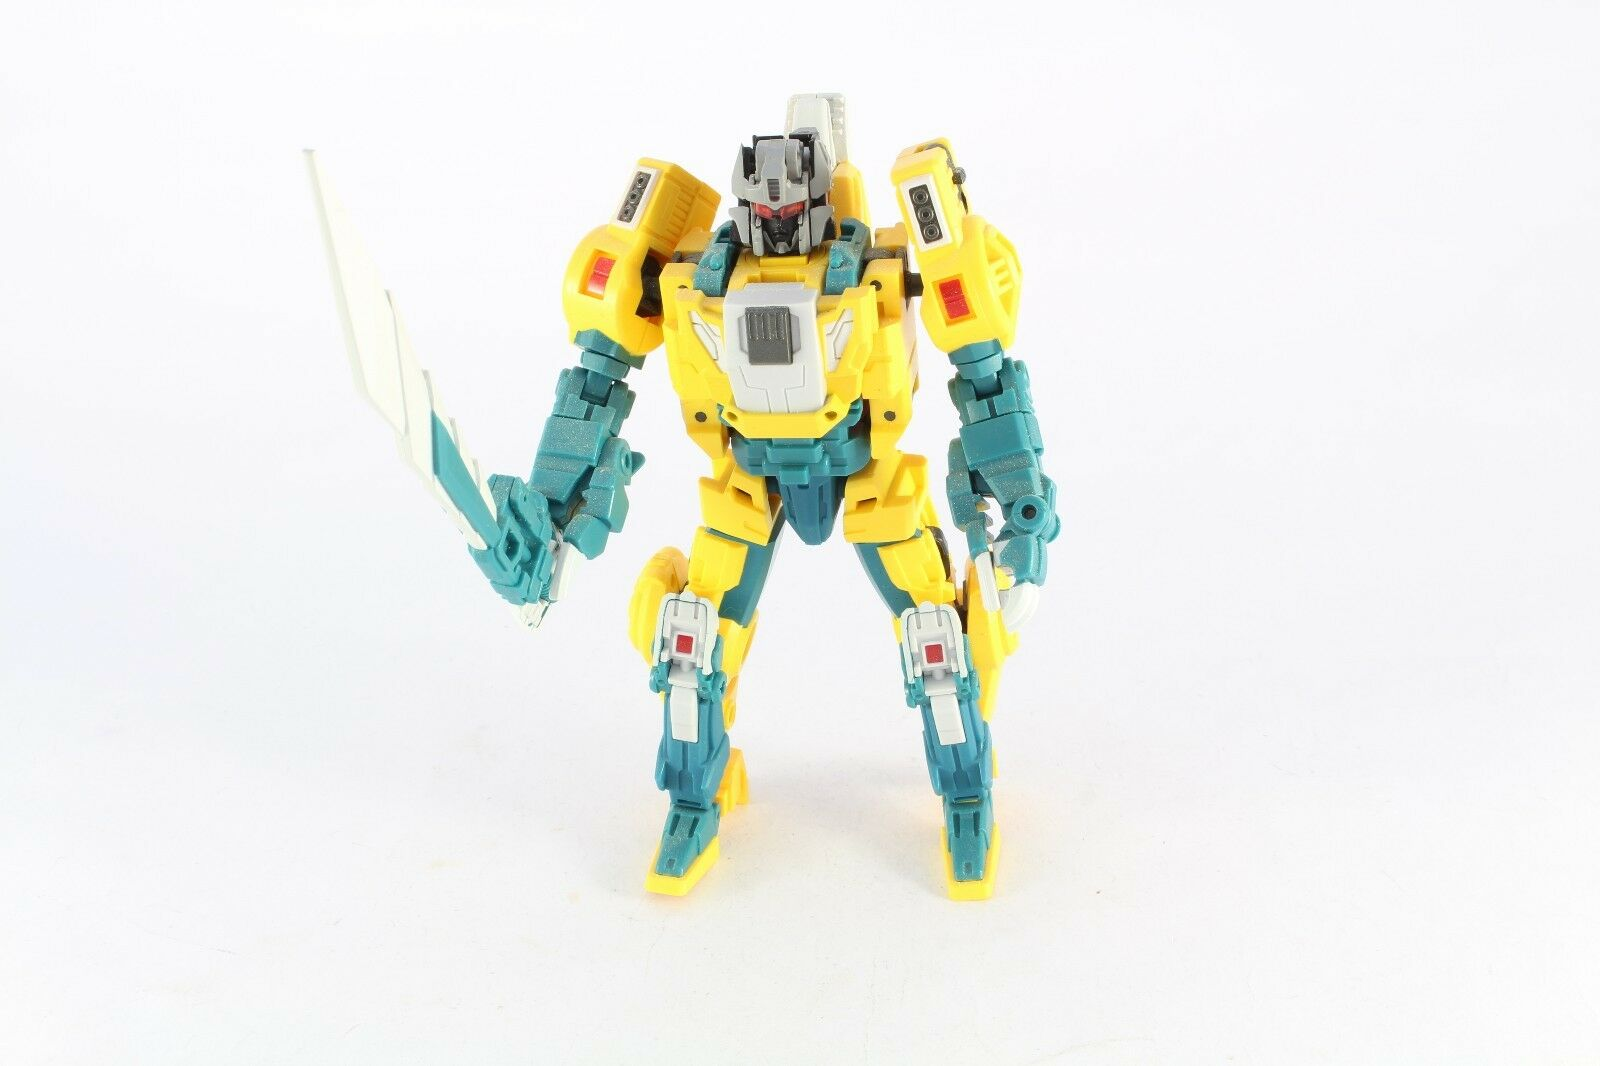 Transformers Fansproject Headmaster Function  X-02 Quad U  Weirdwolf